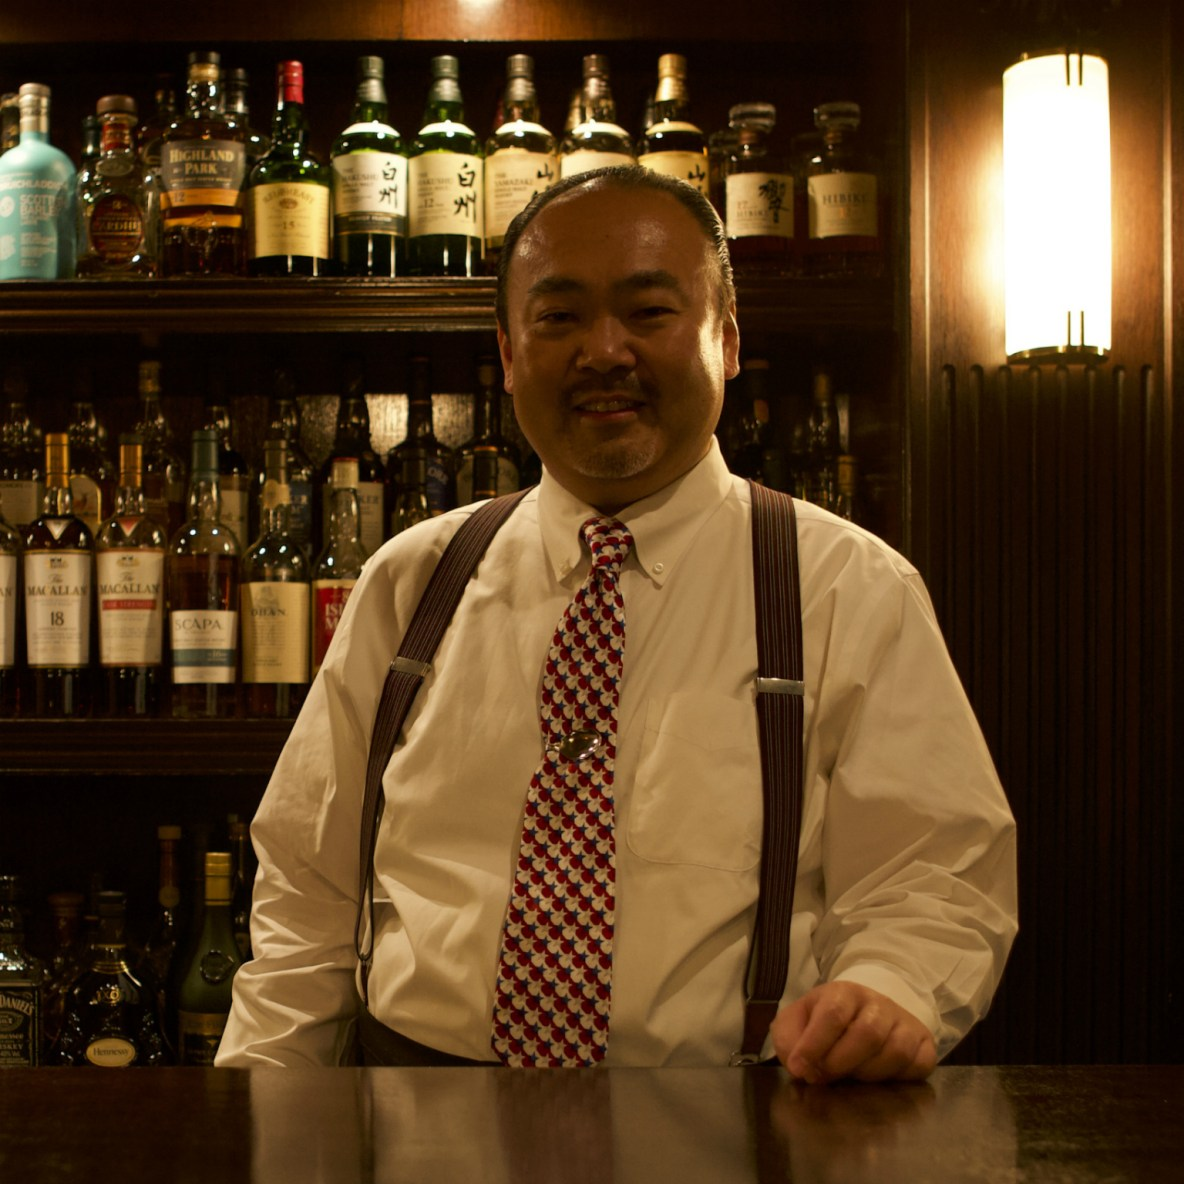 Legendary Ginza bar, where classic cocktails are made properly